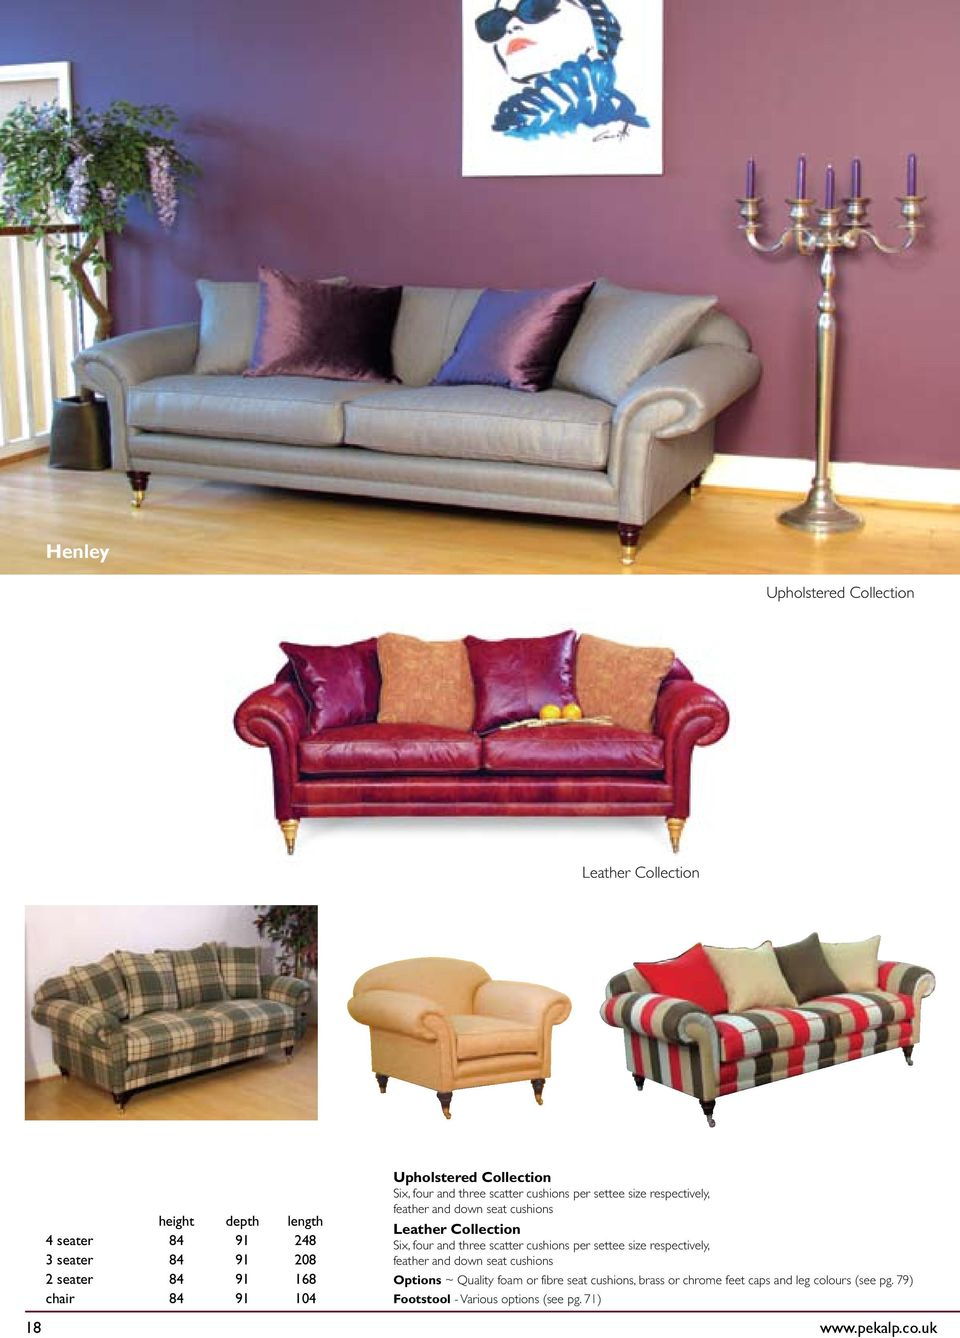 Per Settee Size Respectively Feather And Down Seat Cushions Options Quality Foam Or Fibre